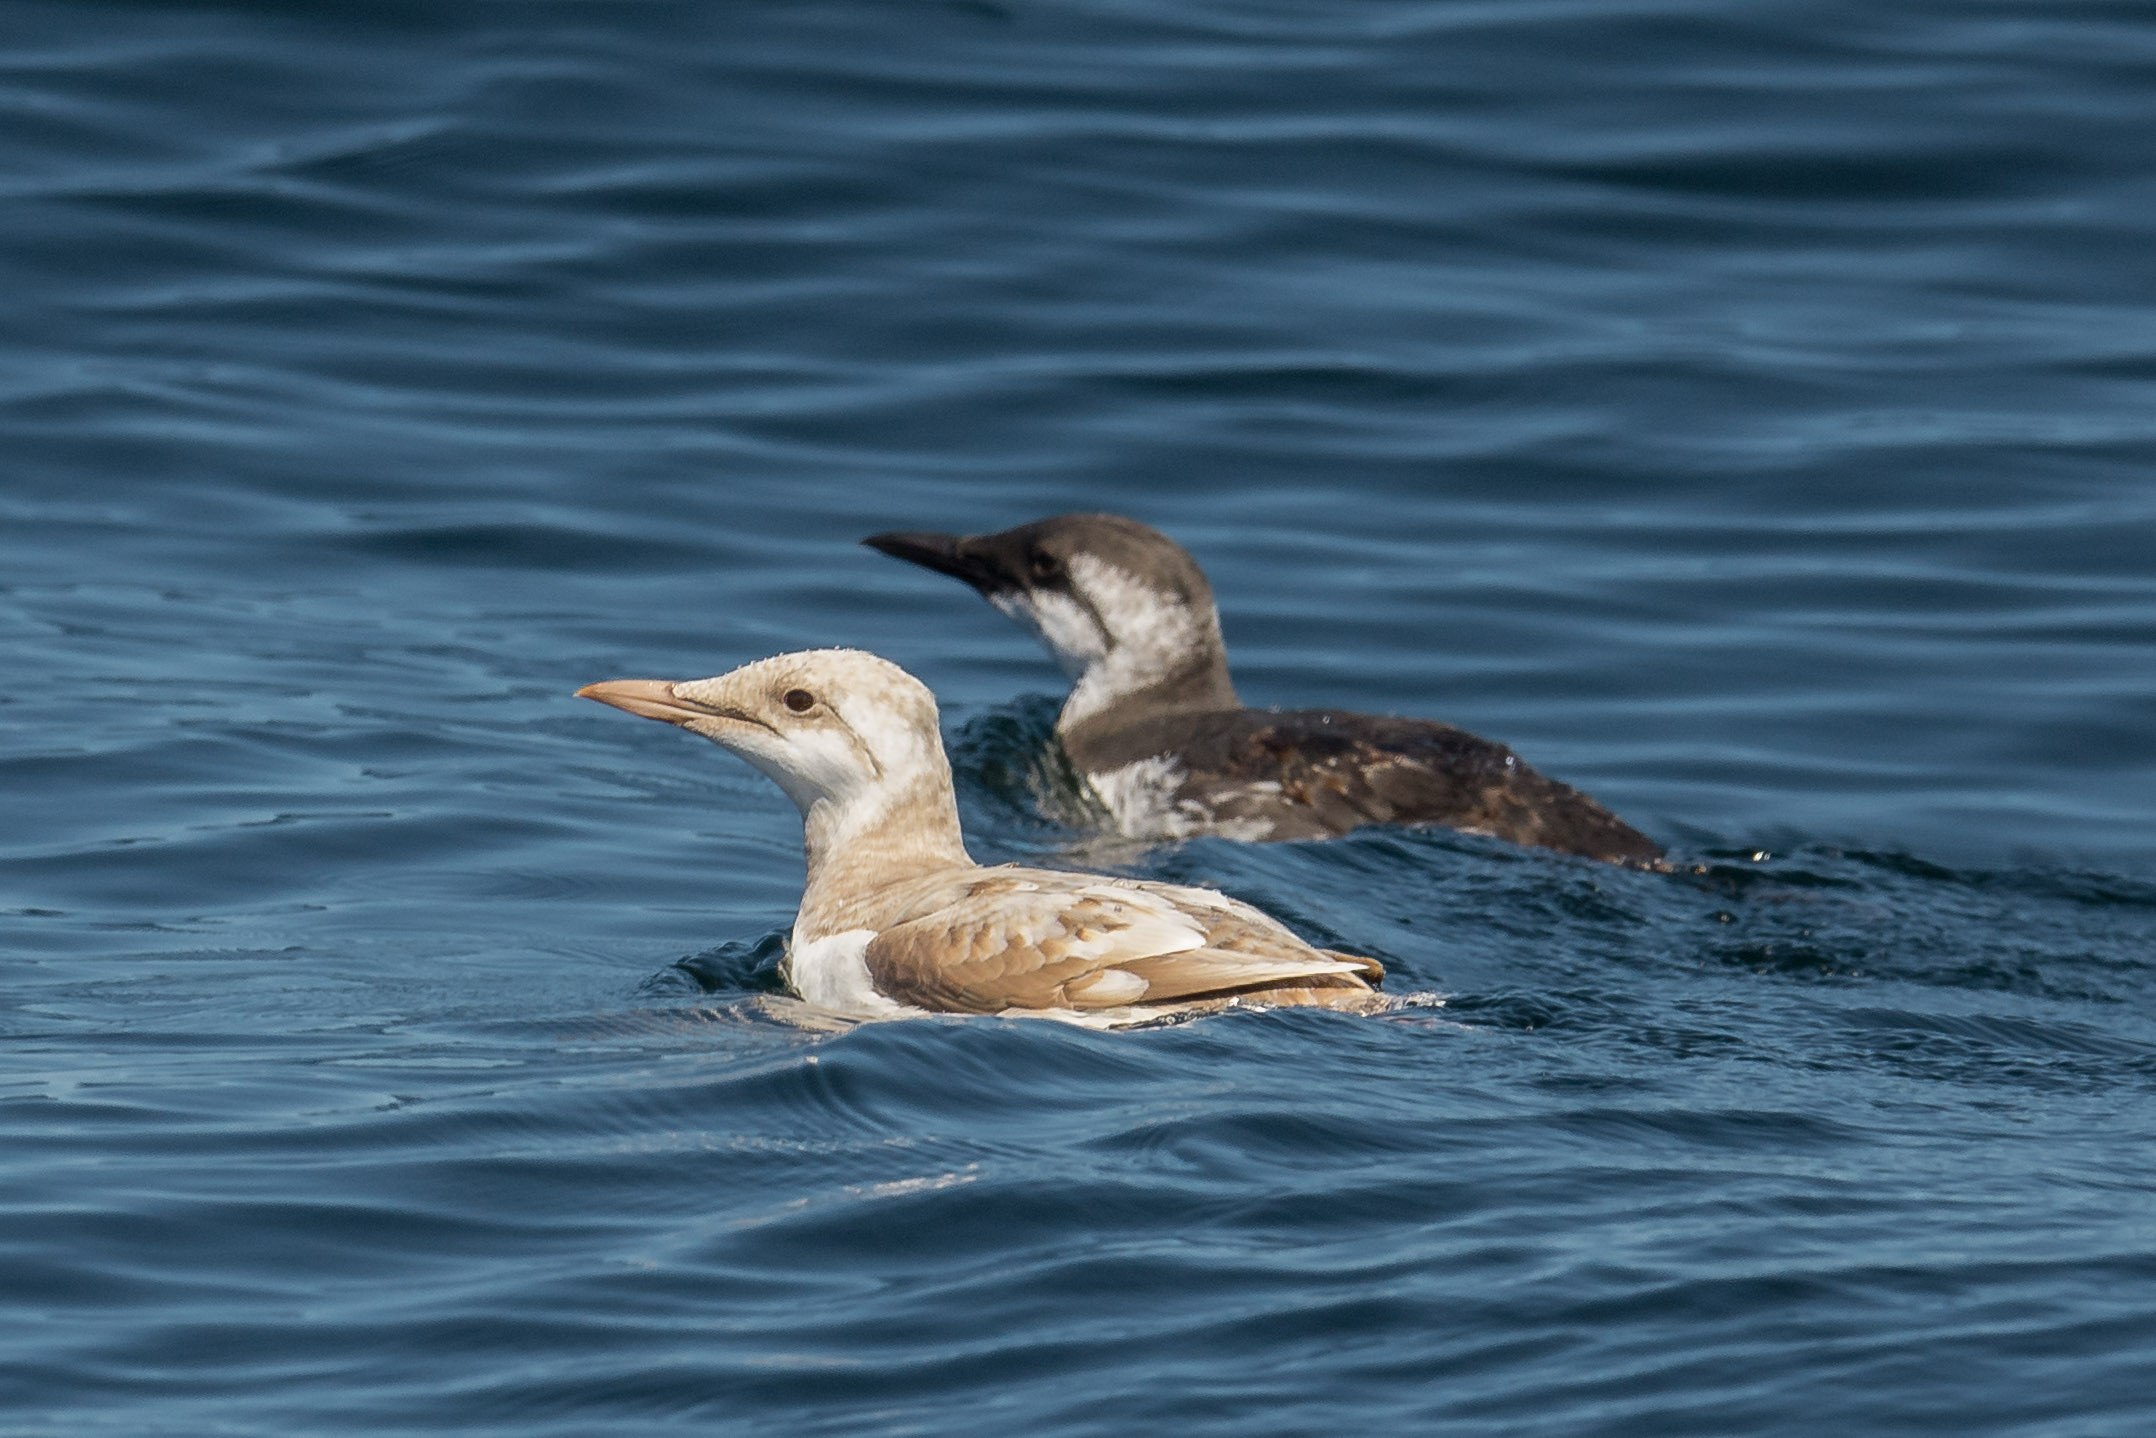 Common Murre with leusitic juvenile (Uria aalge)   Settings: 750 mm (eqiv), 1/2000s, f/5.6, ISO400, +1/3EV (12:50)